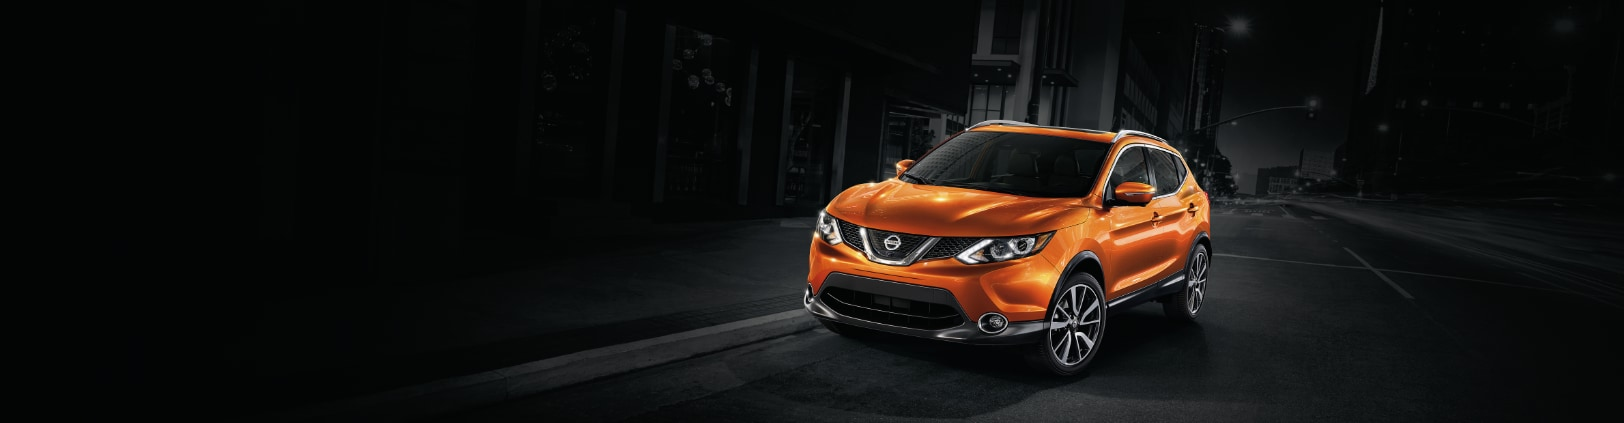 2017 Nissan Rogue Sport for Sale in Saint James, NY at Smithtown Nissan